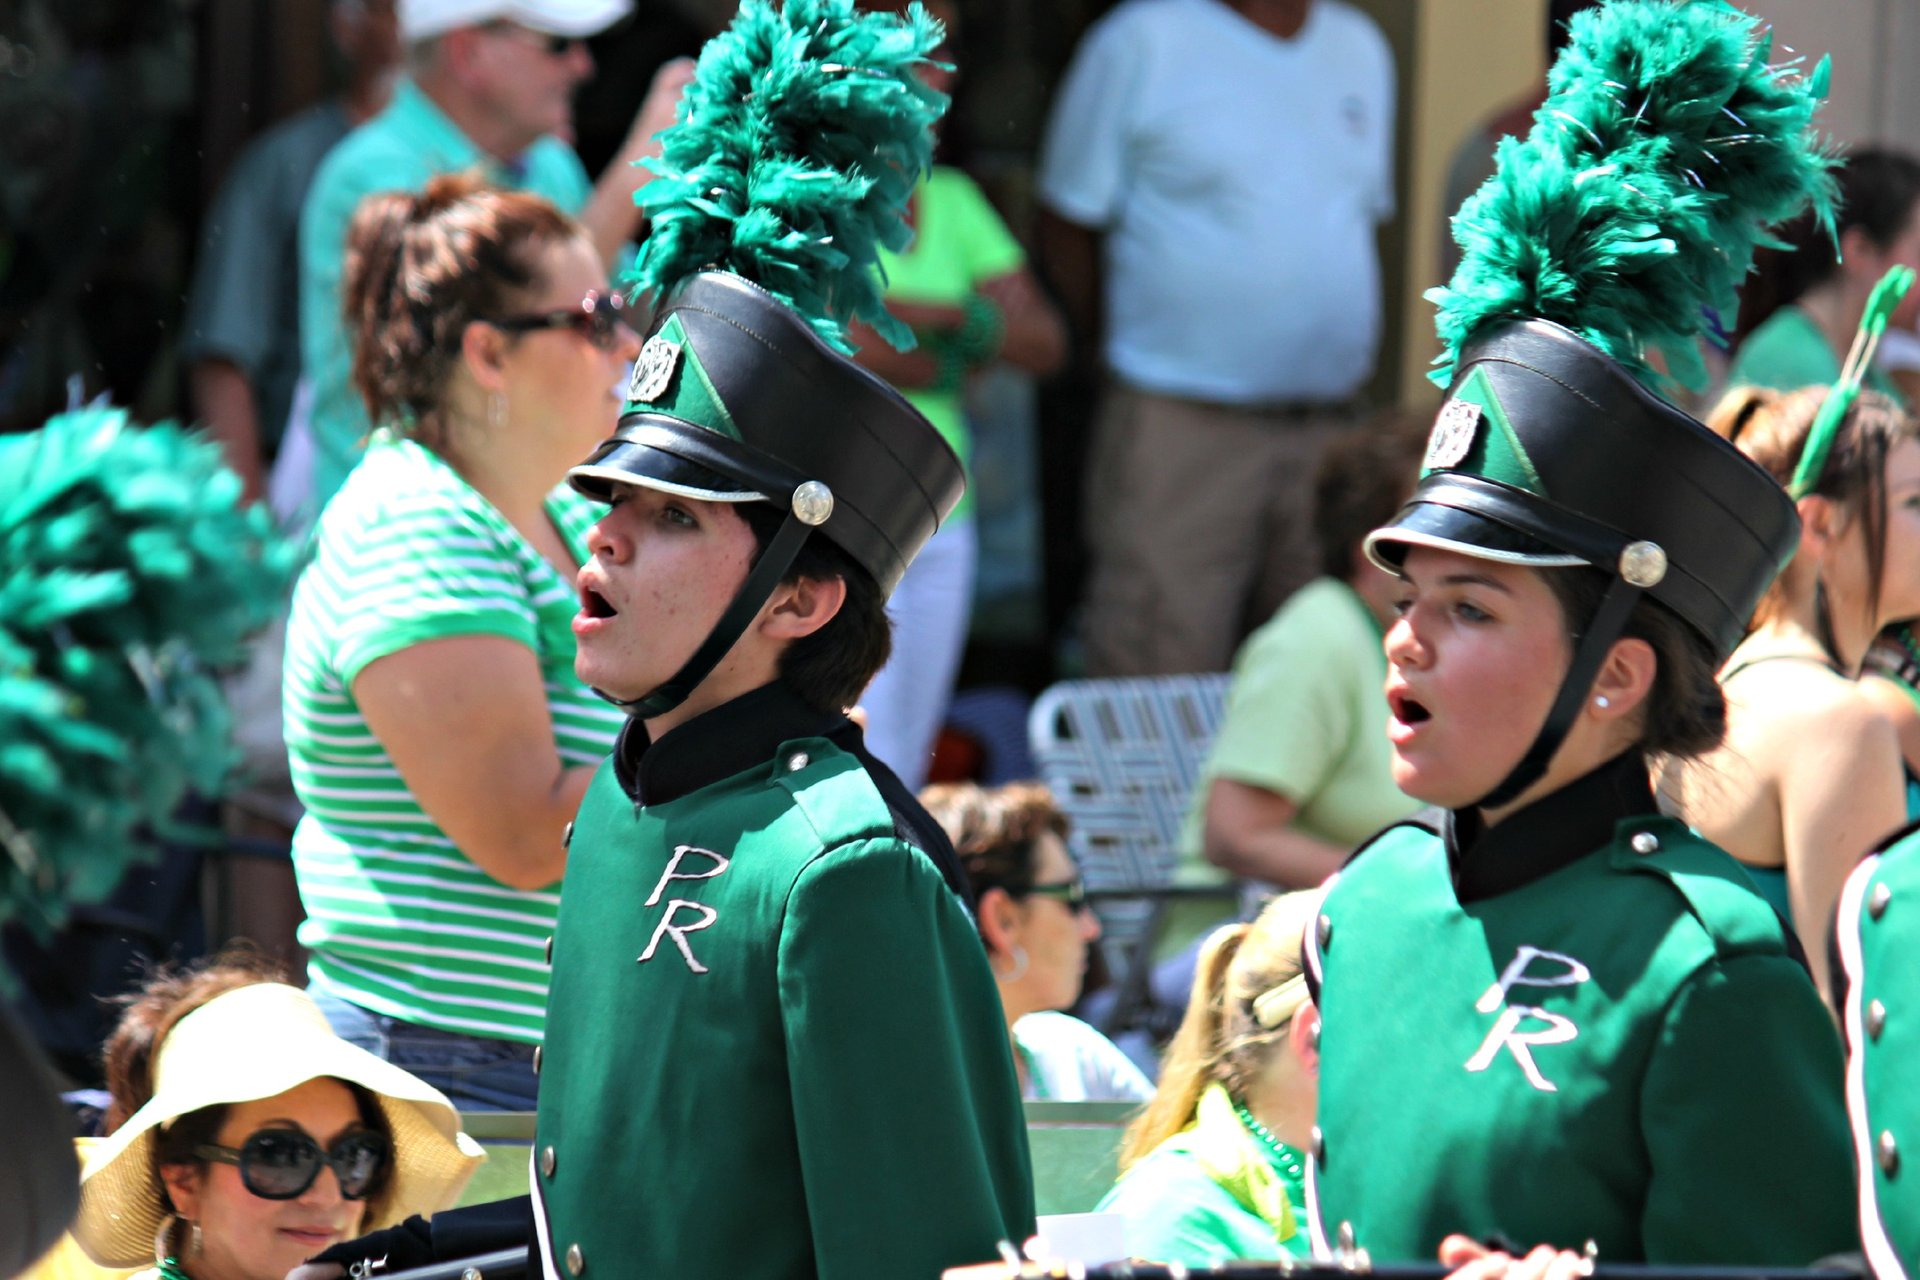 Naples St. Patrick's Day Parade in Florida 2020 - Best Time